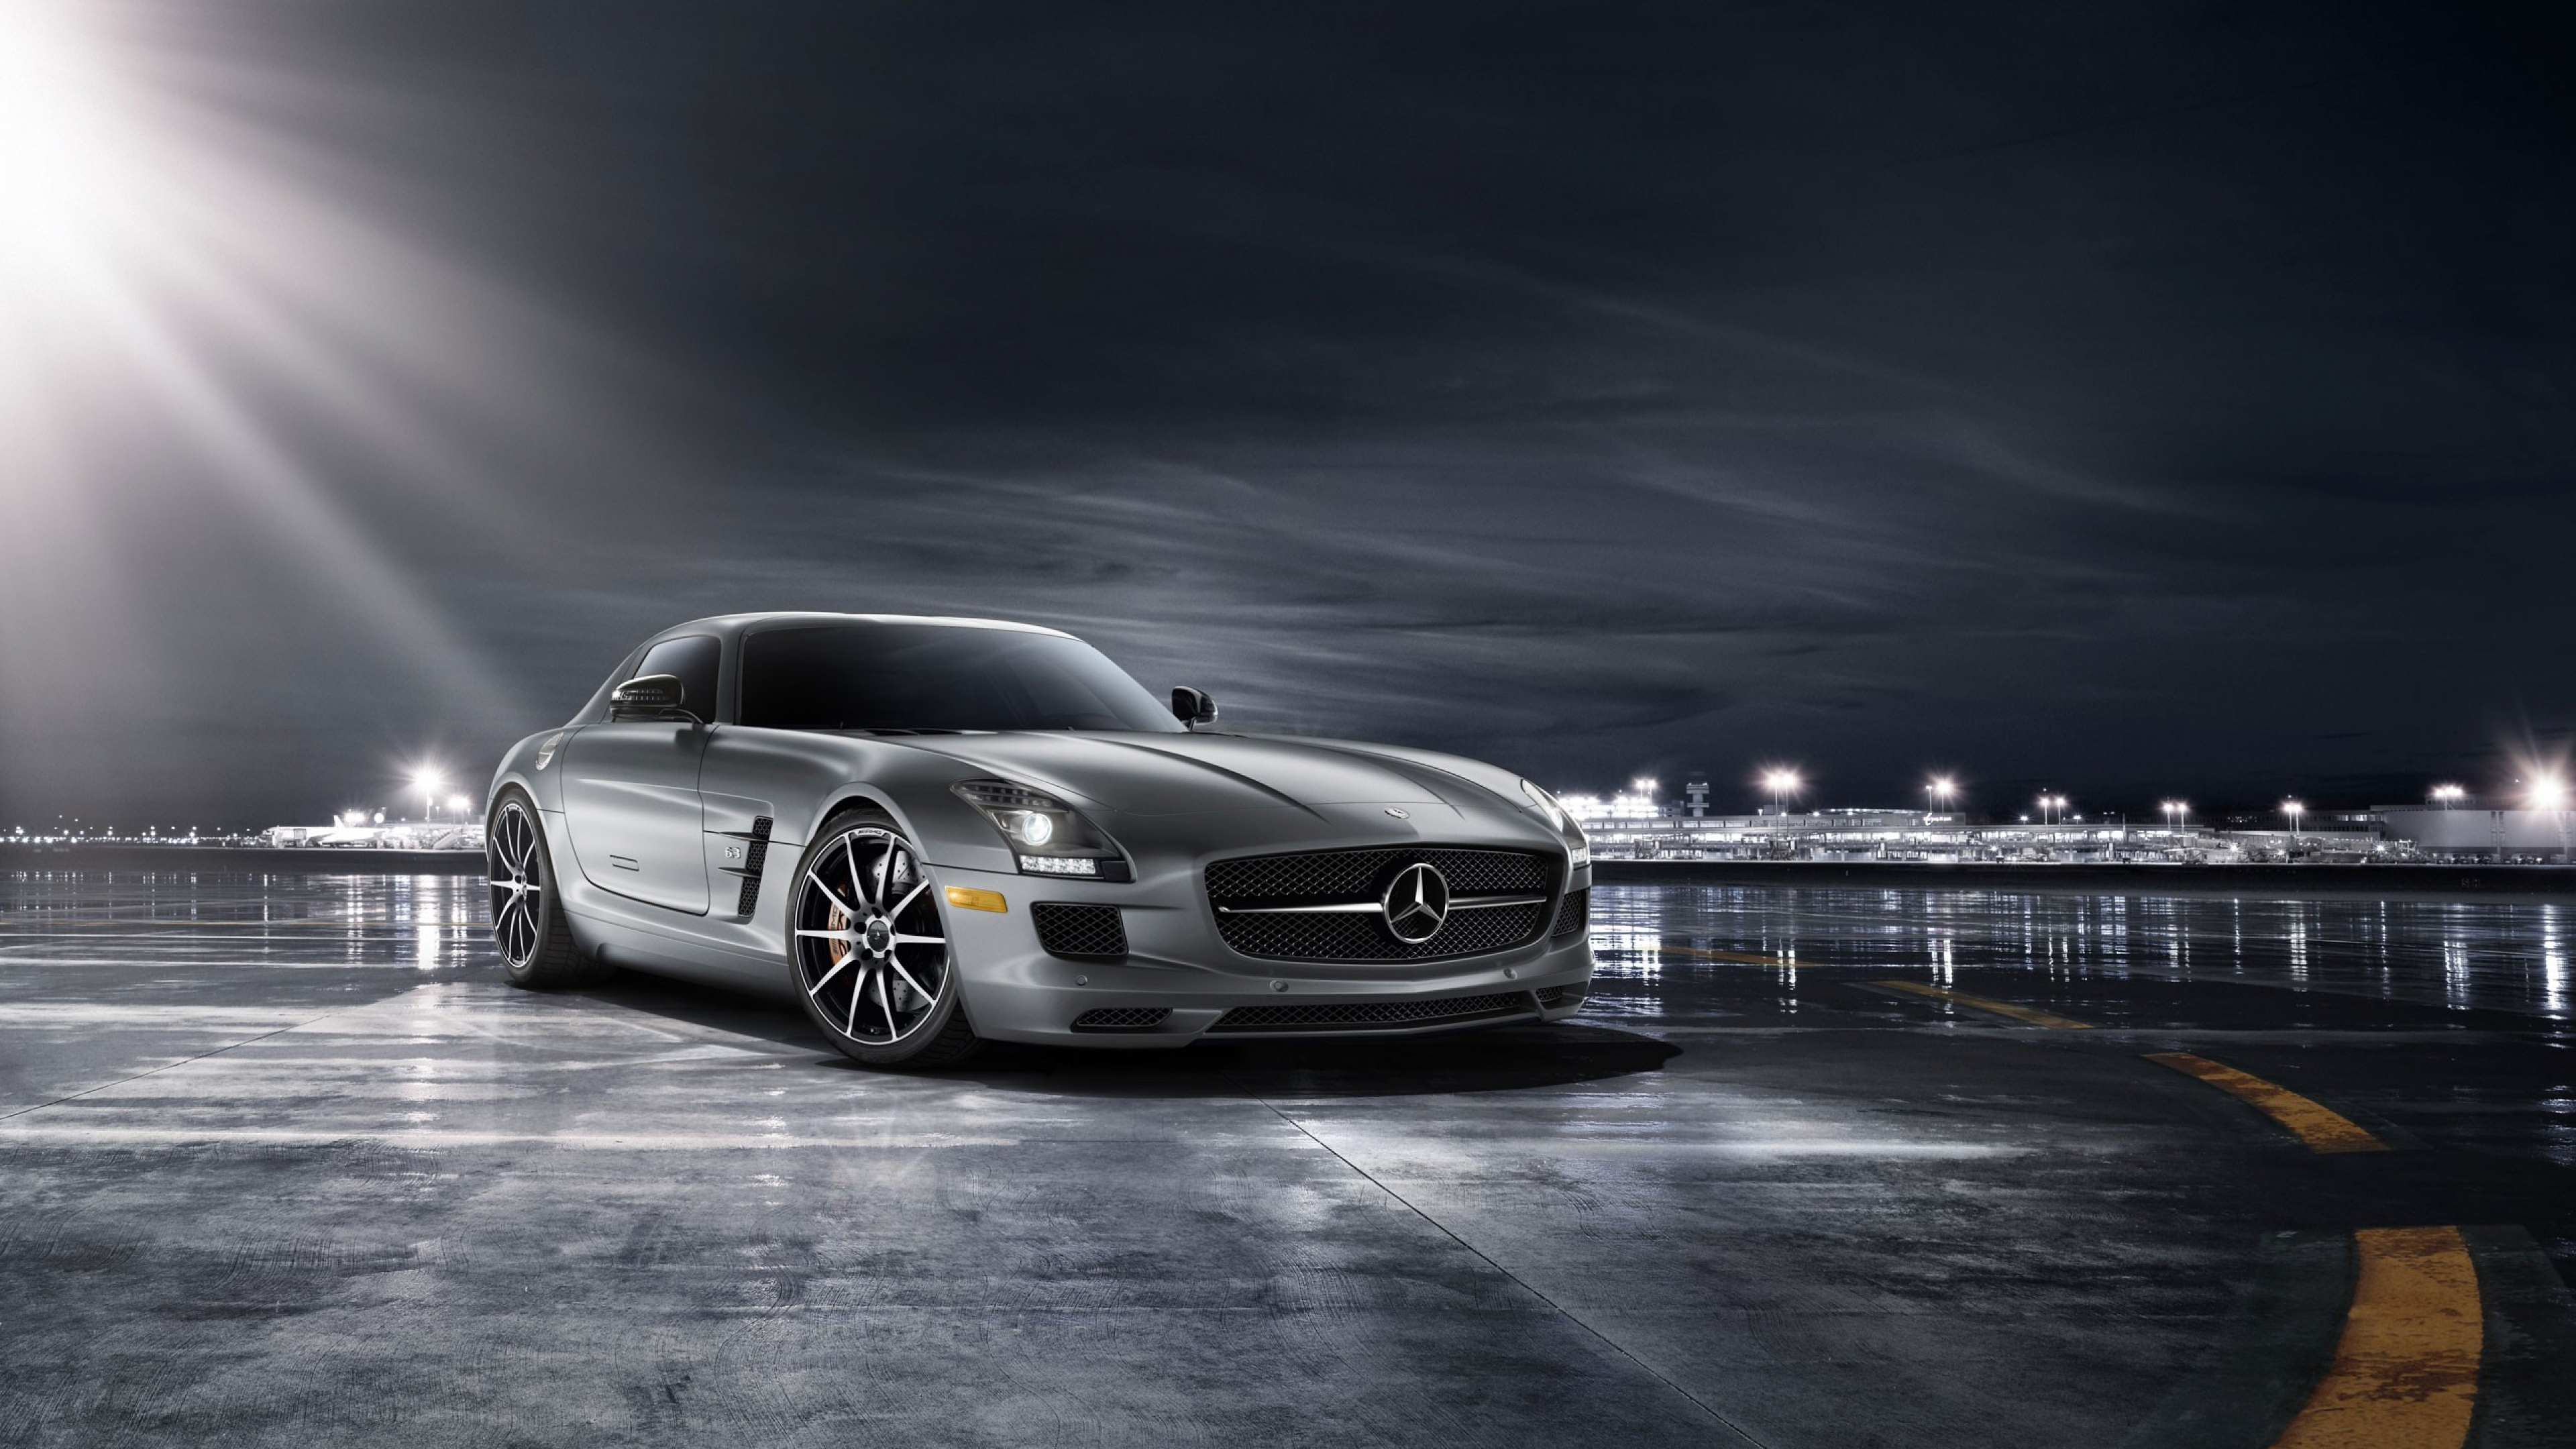 Mercedes Benz Images Mercedes Benz Sls Amg Hd Wallpaper And